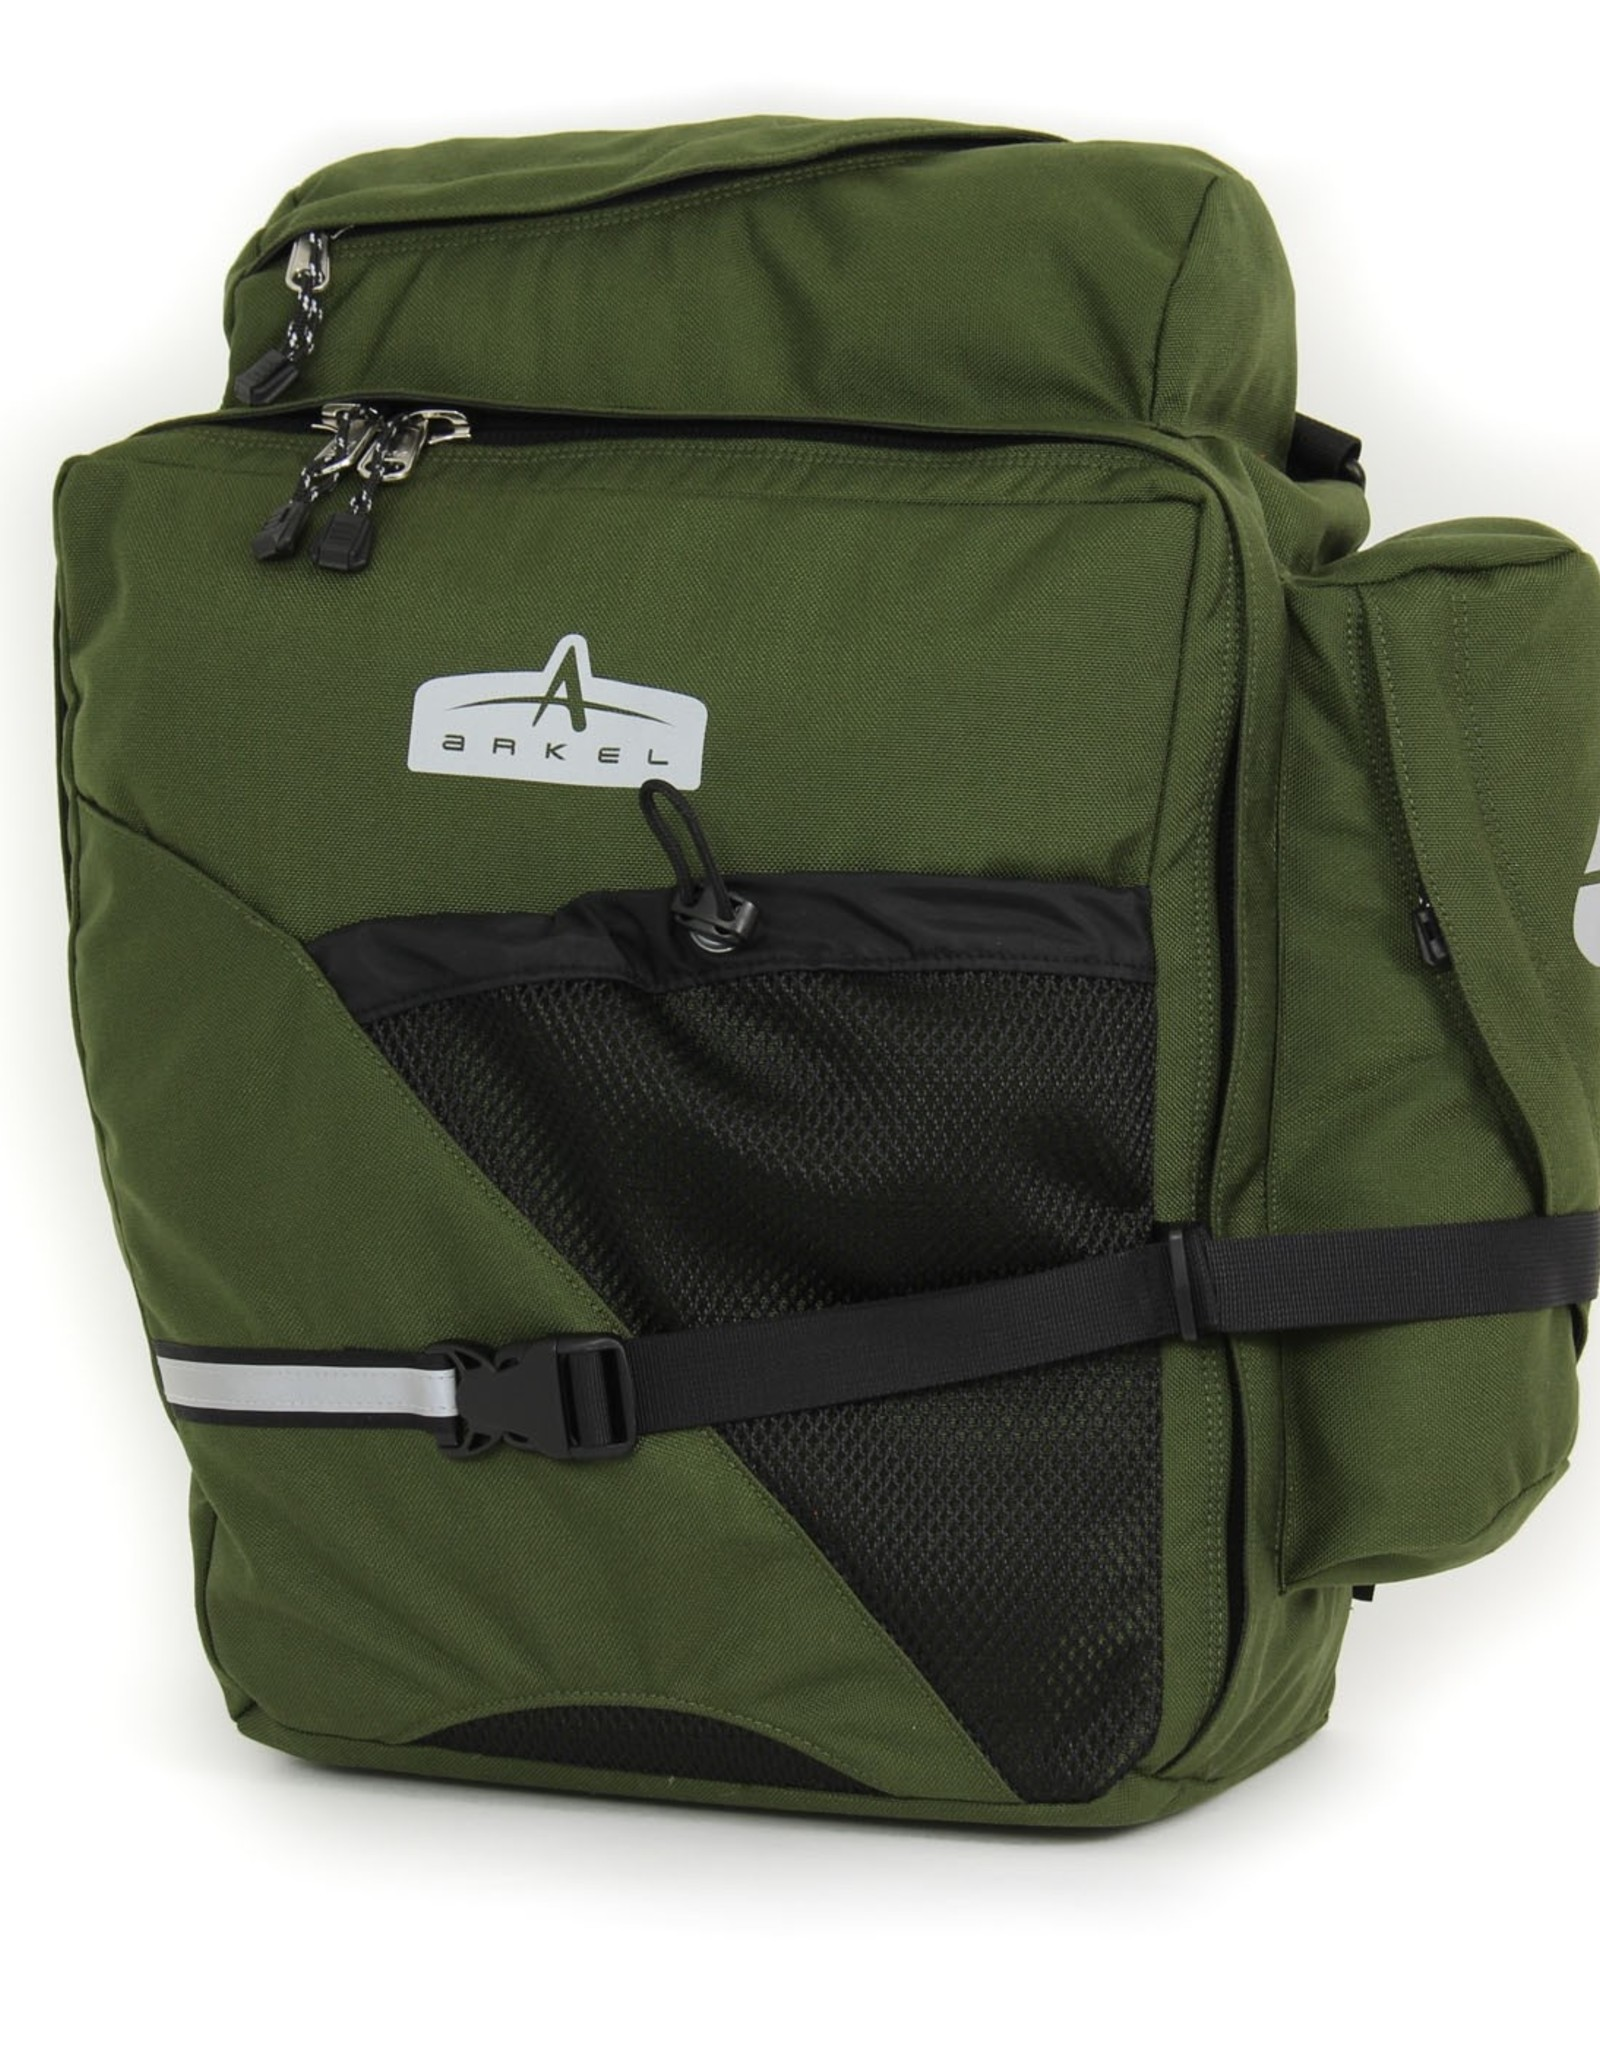 Arkel Arkel T-42 Classic Touring Panniers (pair)